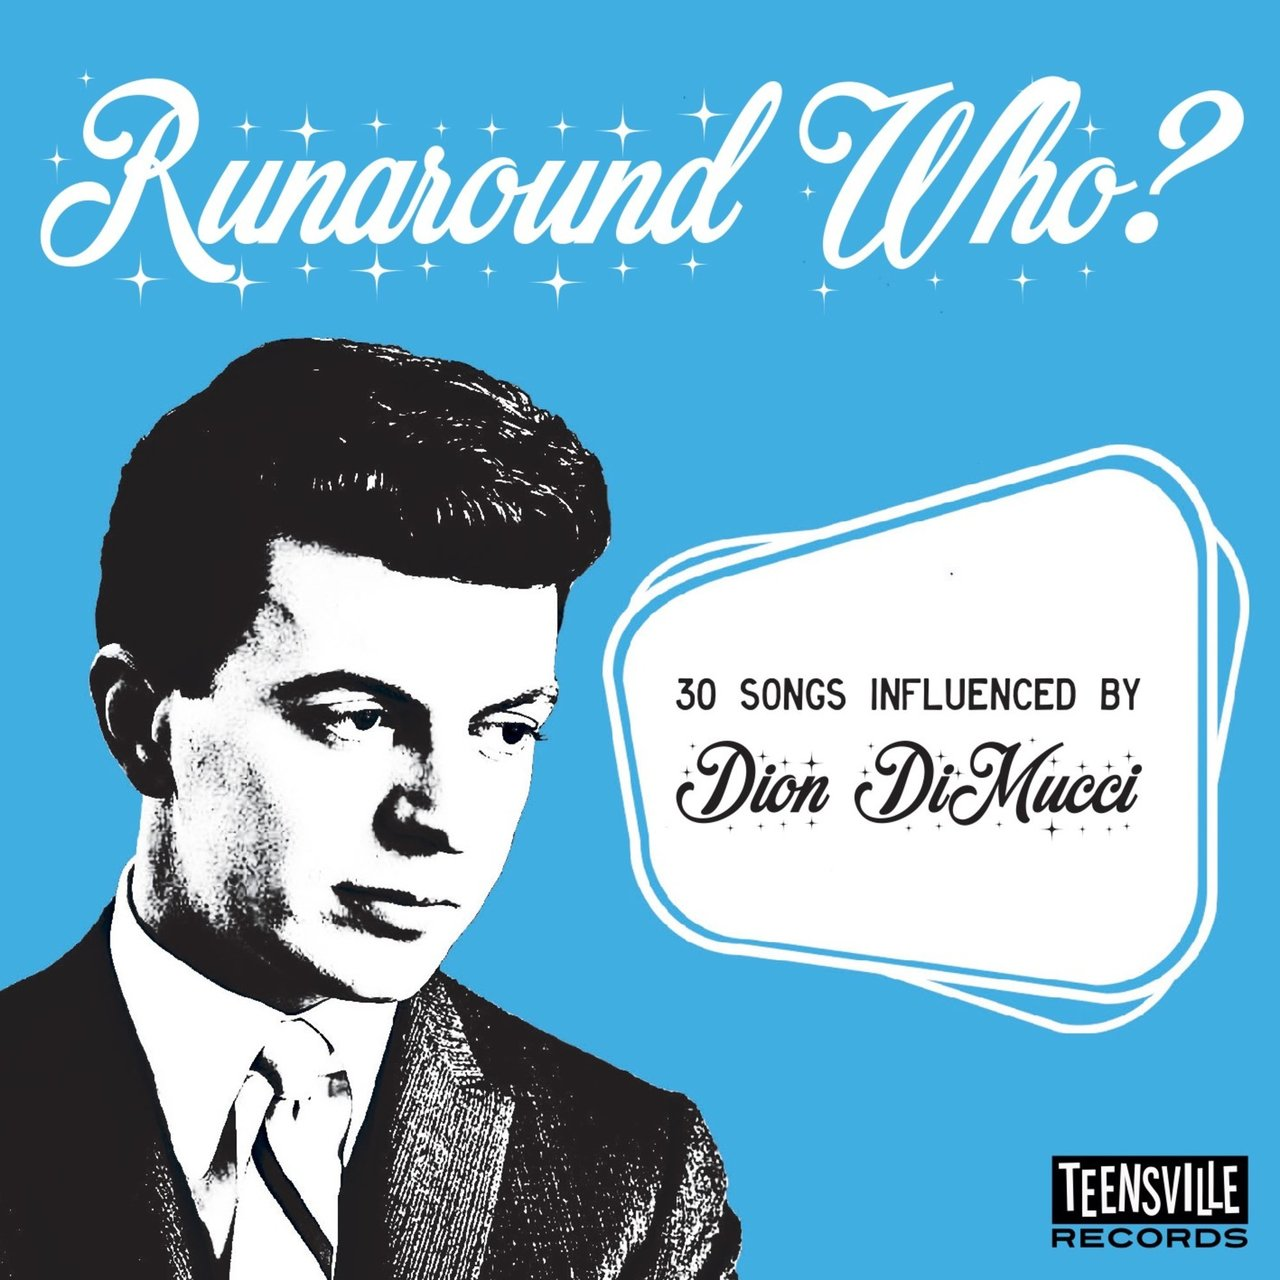 Runaround Who? (30 Songs Influenced By Dion Dimucci)